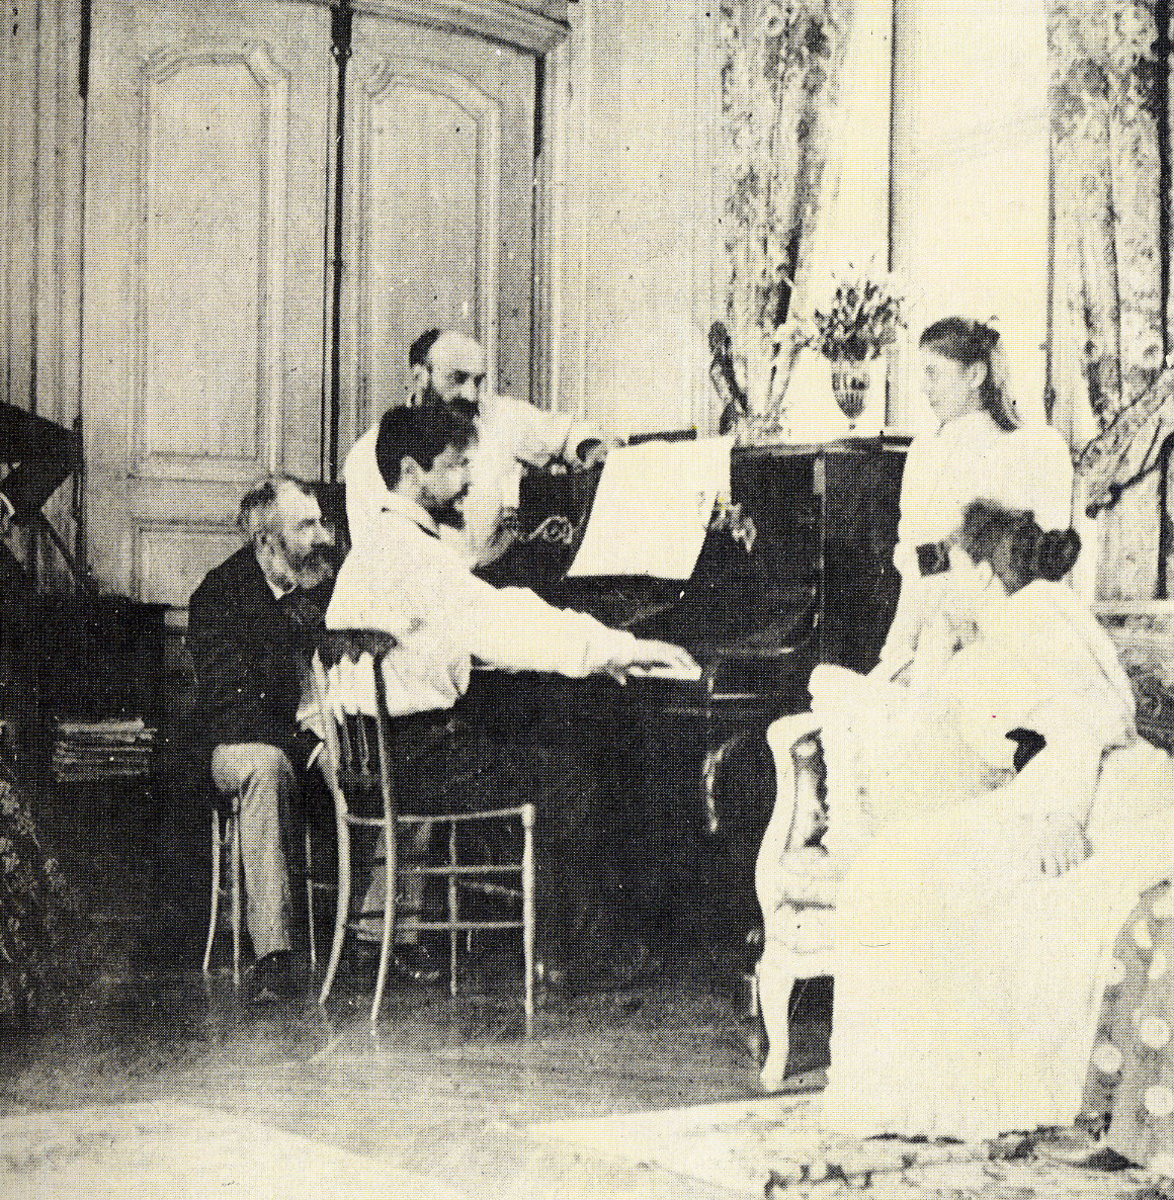 Claude Debussy 1862-1918 Photo of Debussy in 1893 at the piano at his friend's house, the composer Ernest Chausson .